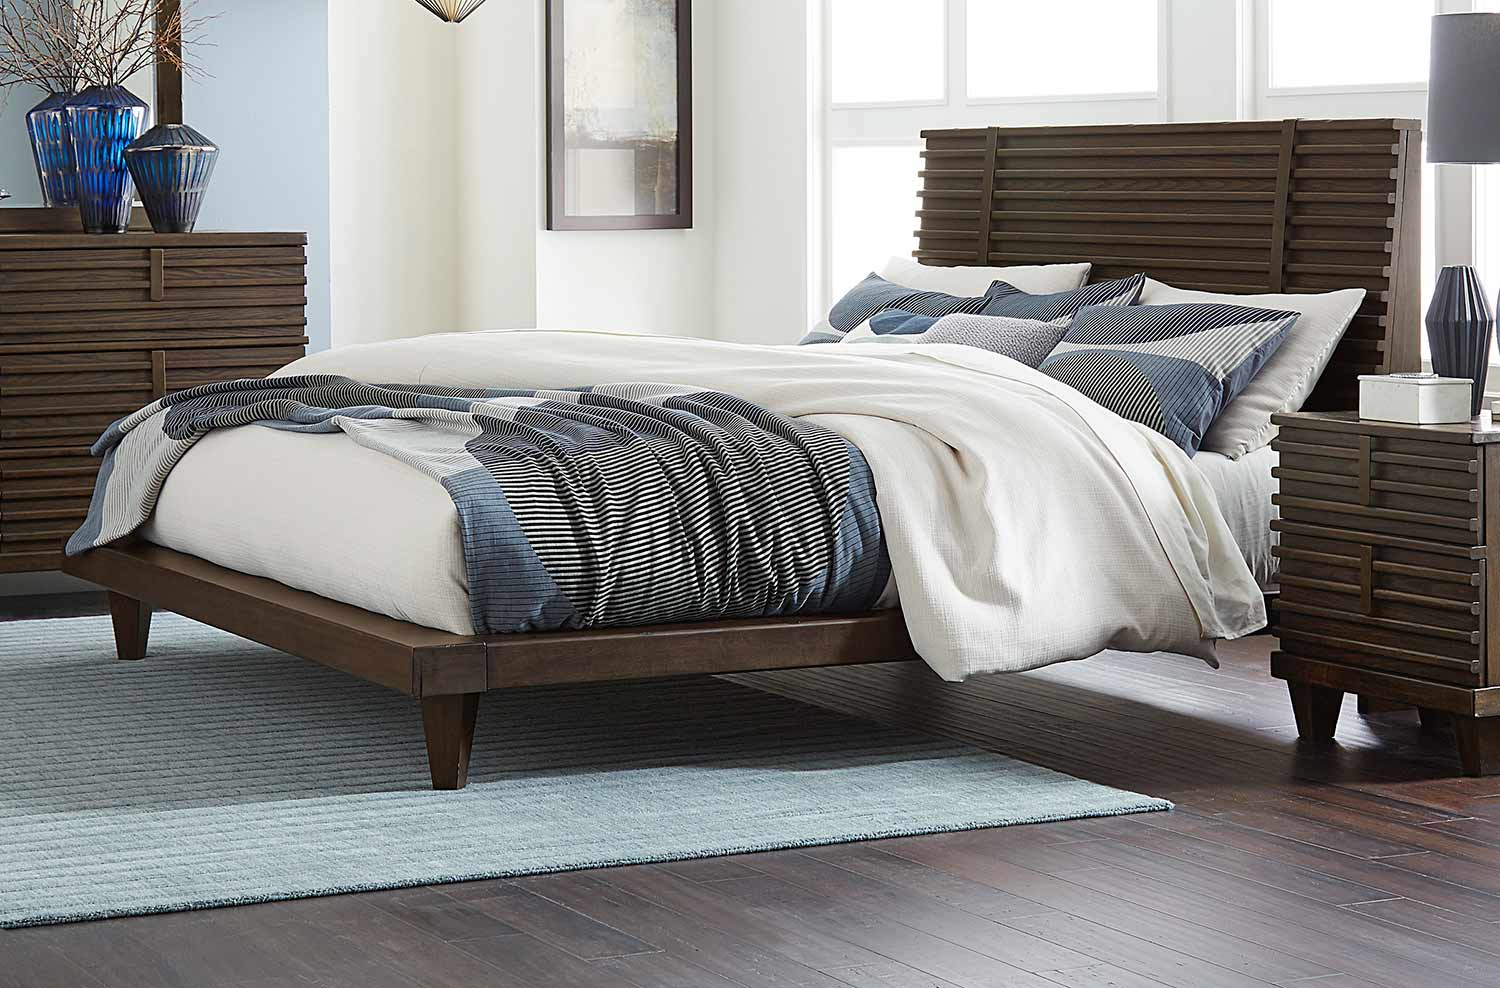 Homelegance Ridgewood Platform Bed - Rustic Burnished Oak